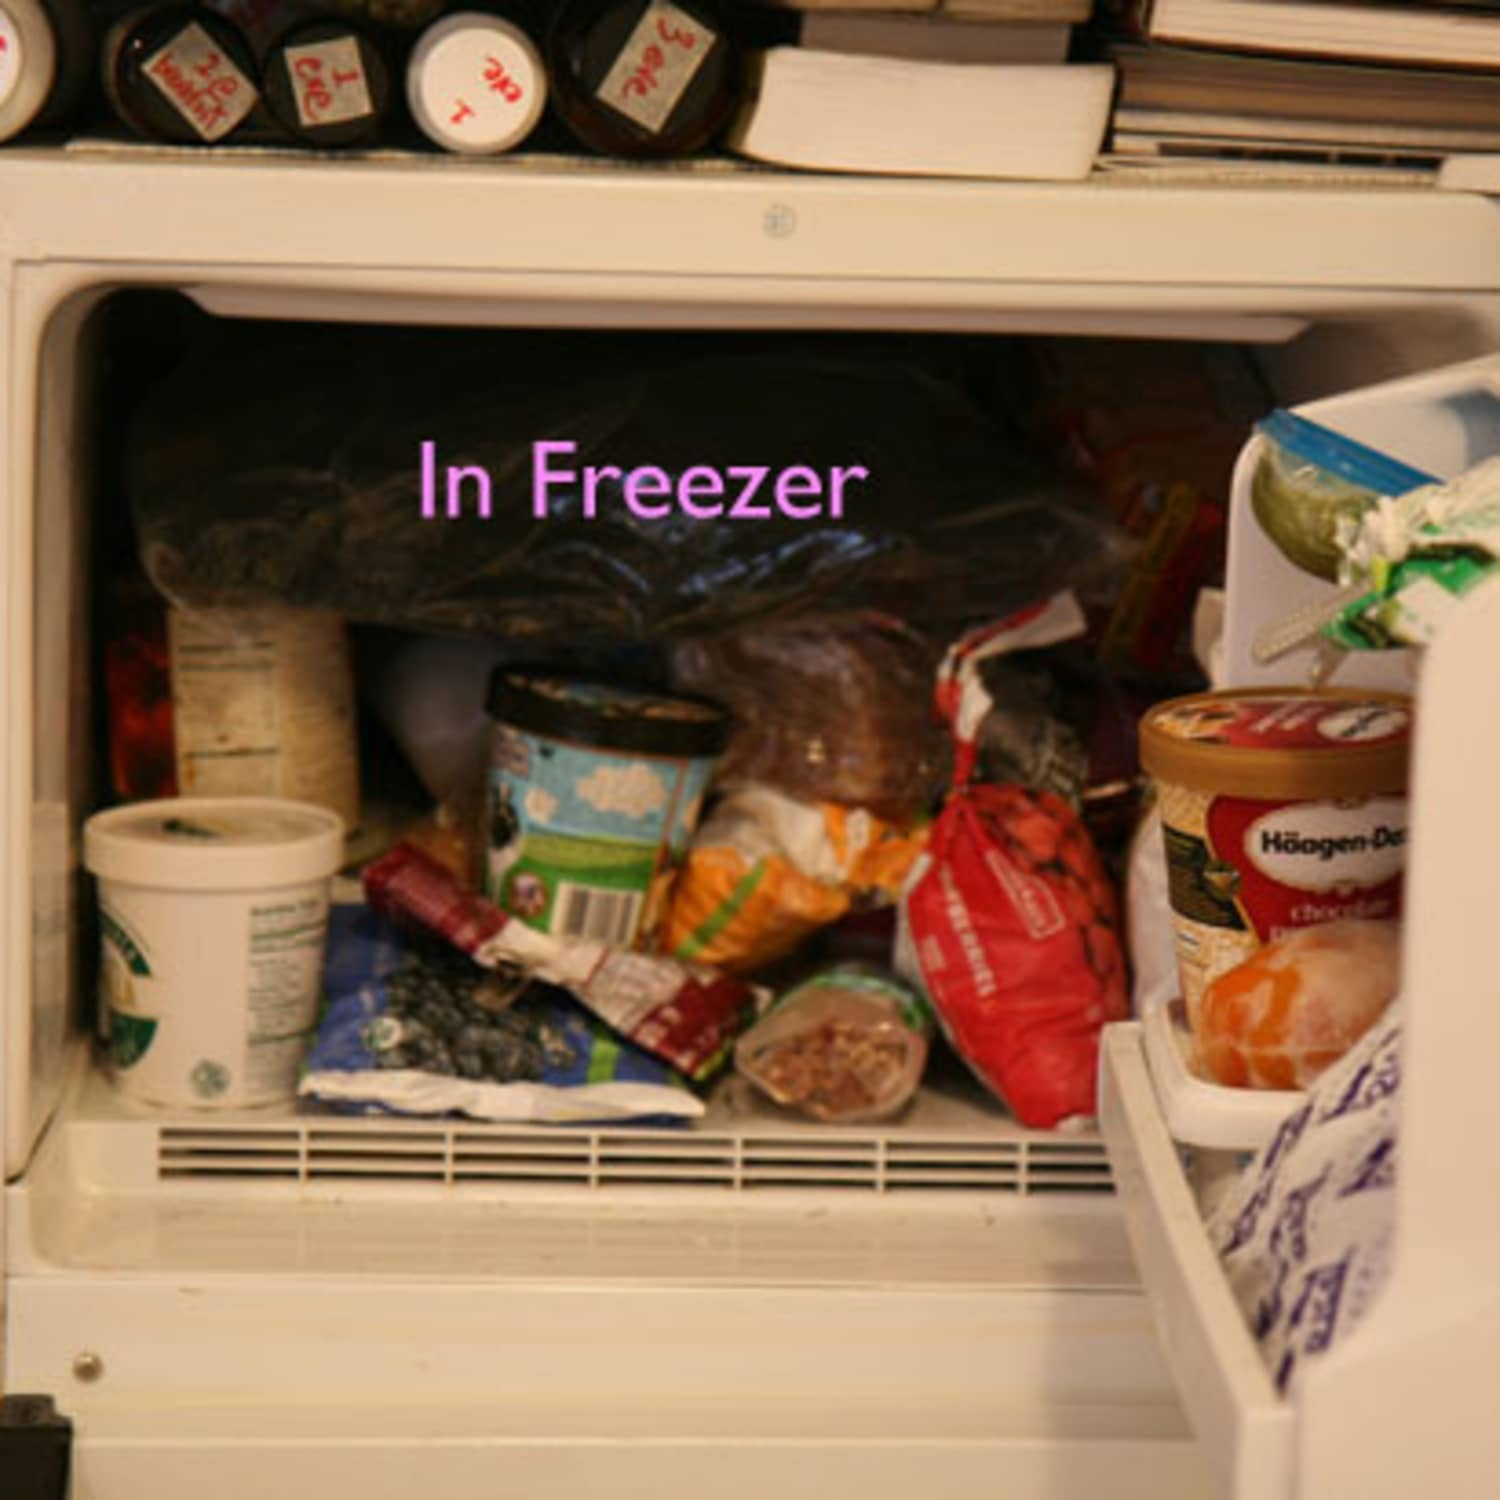 How To Clean Your Jeans Without Water (In the Freezer